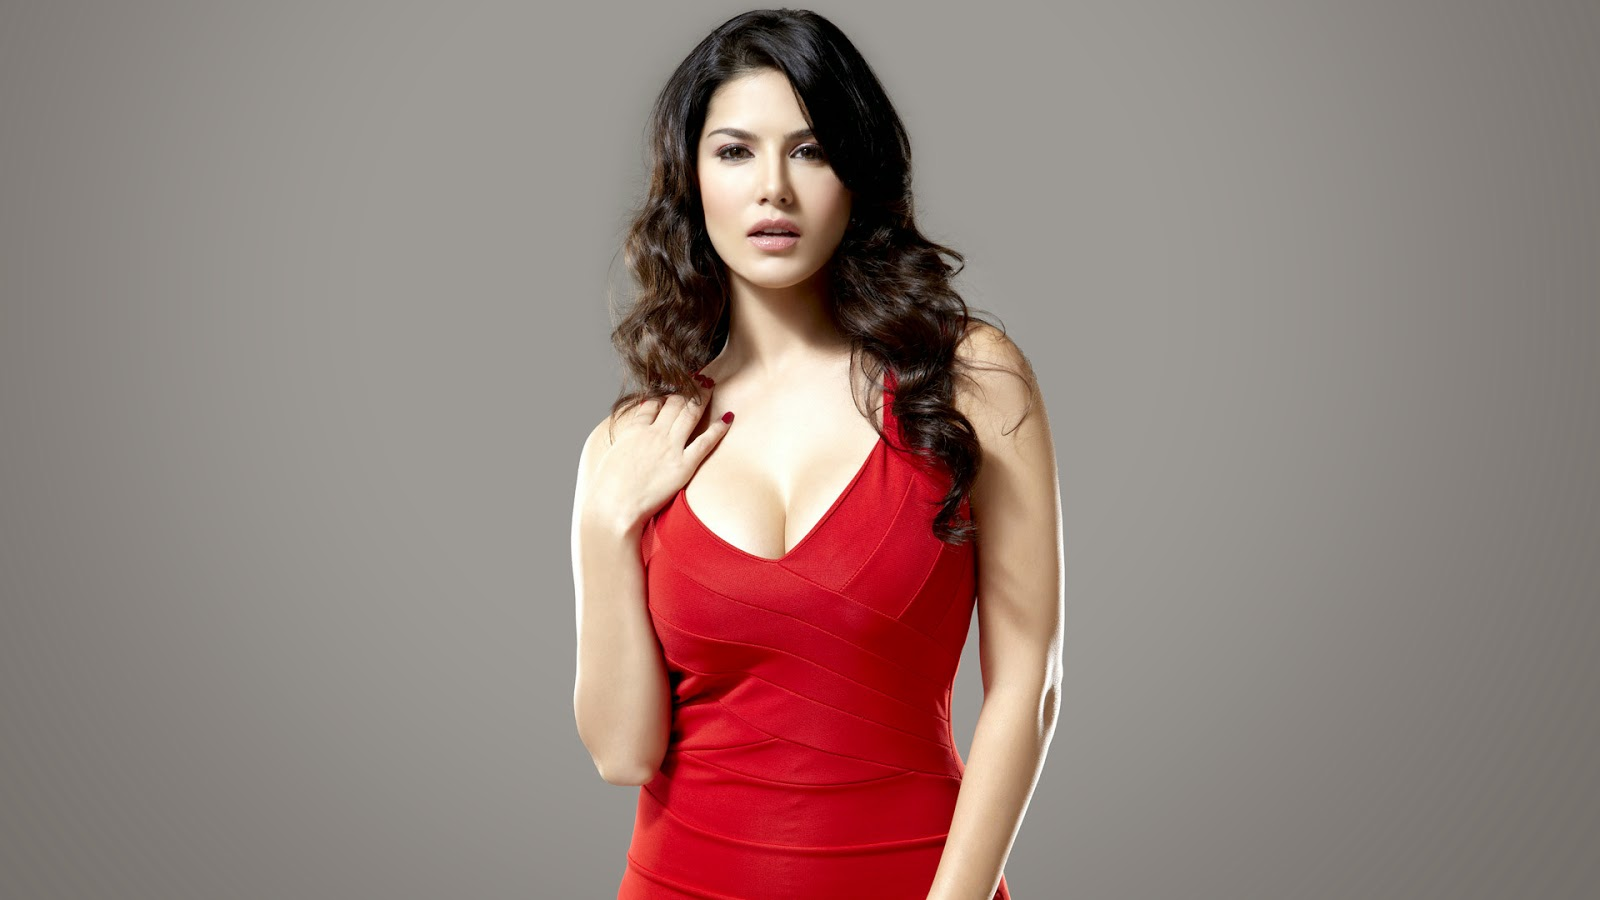 sunny leone wallpaper - hd wallpapers